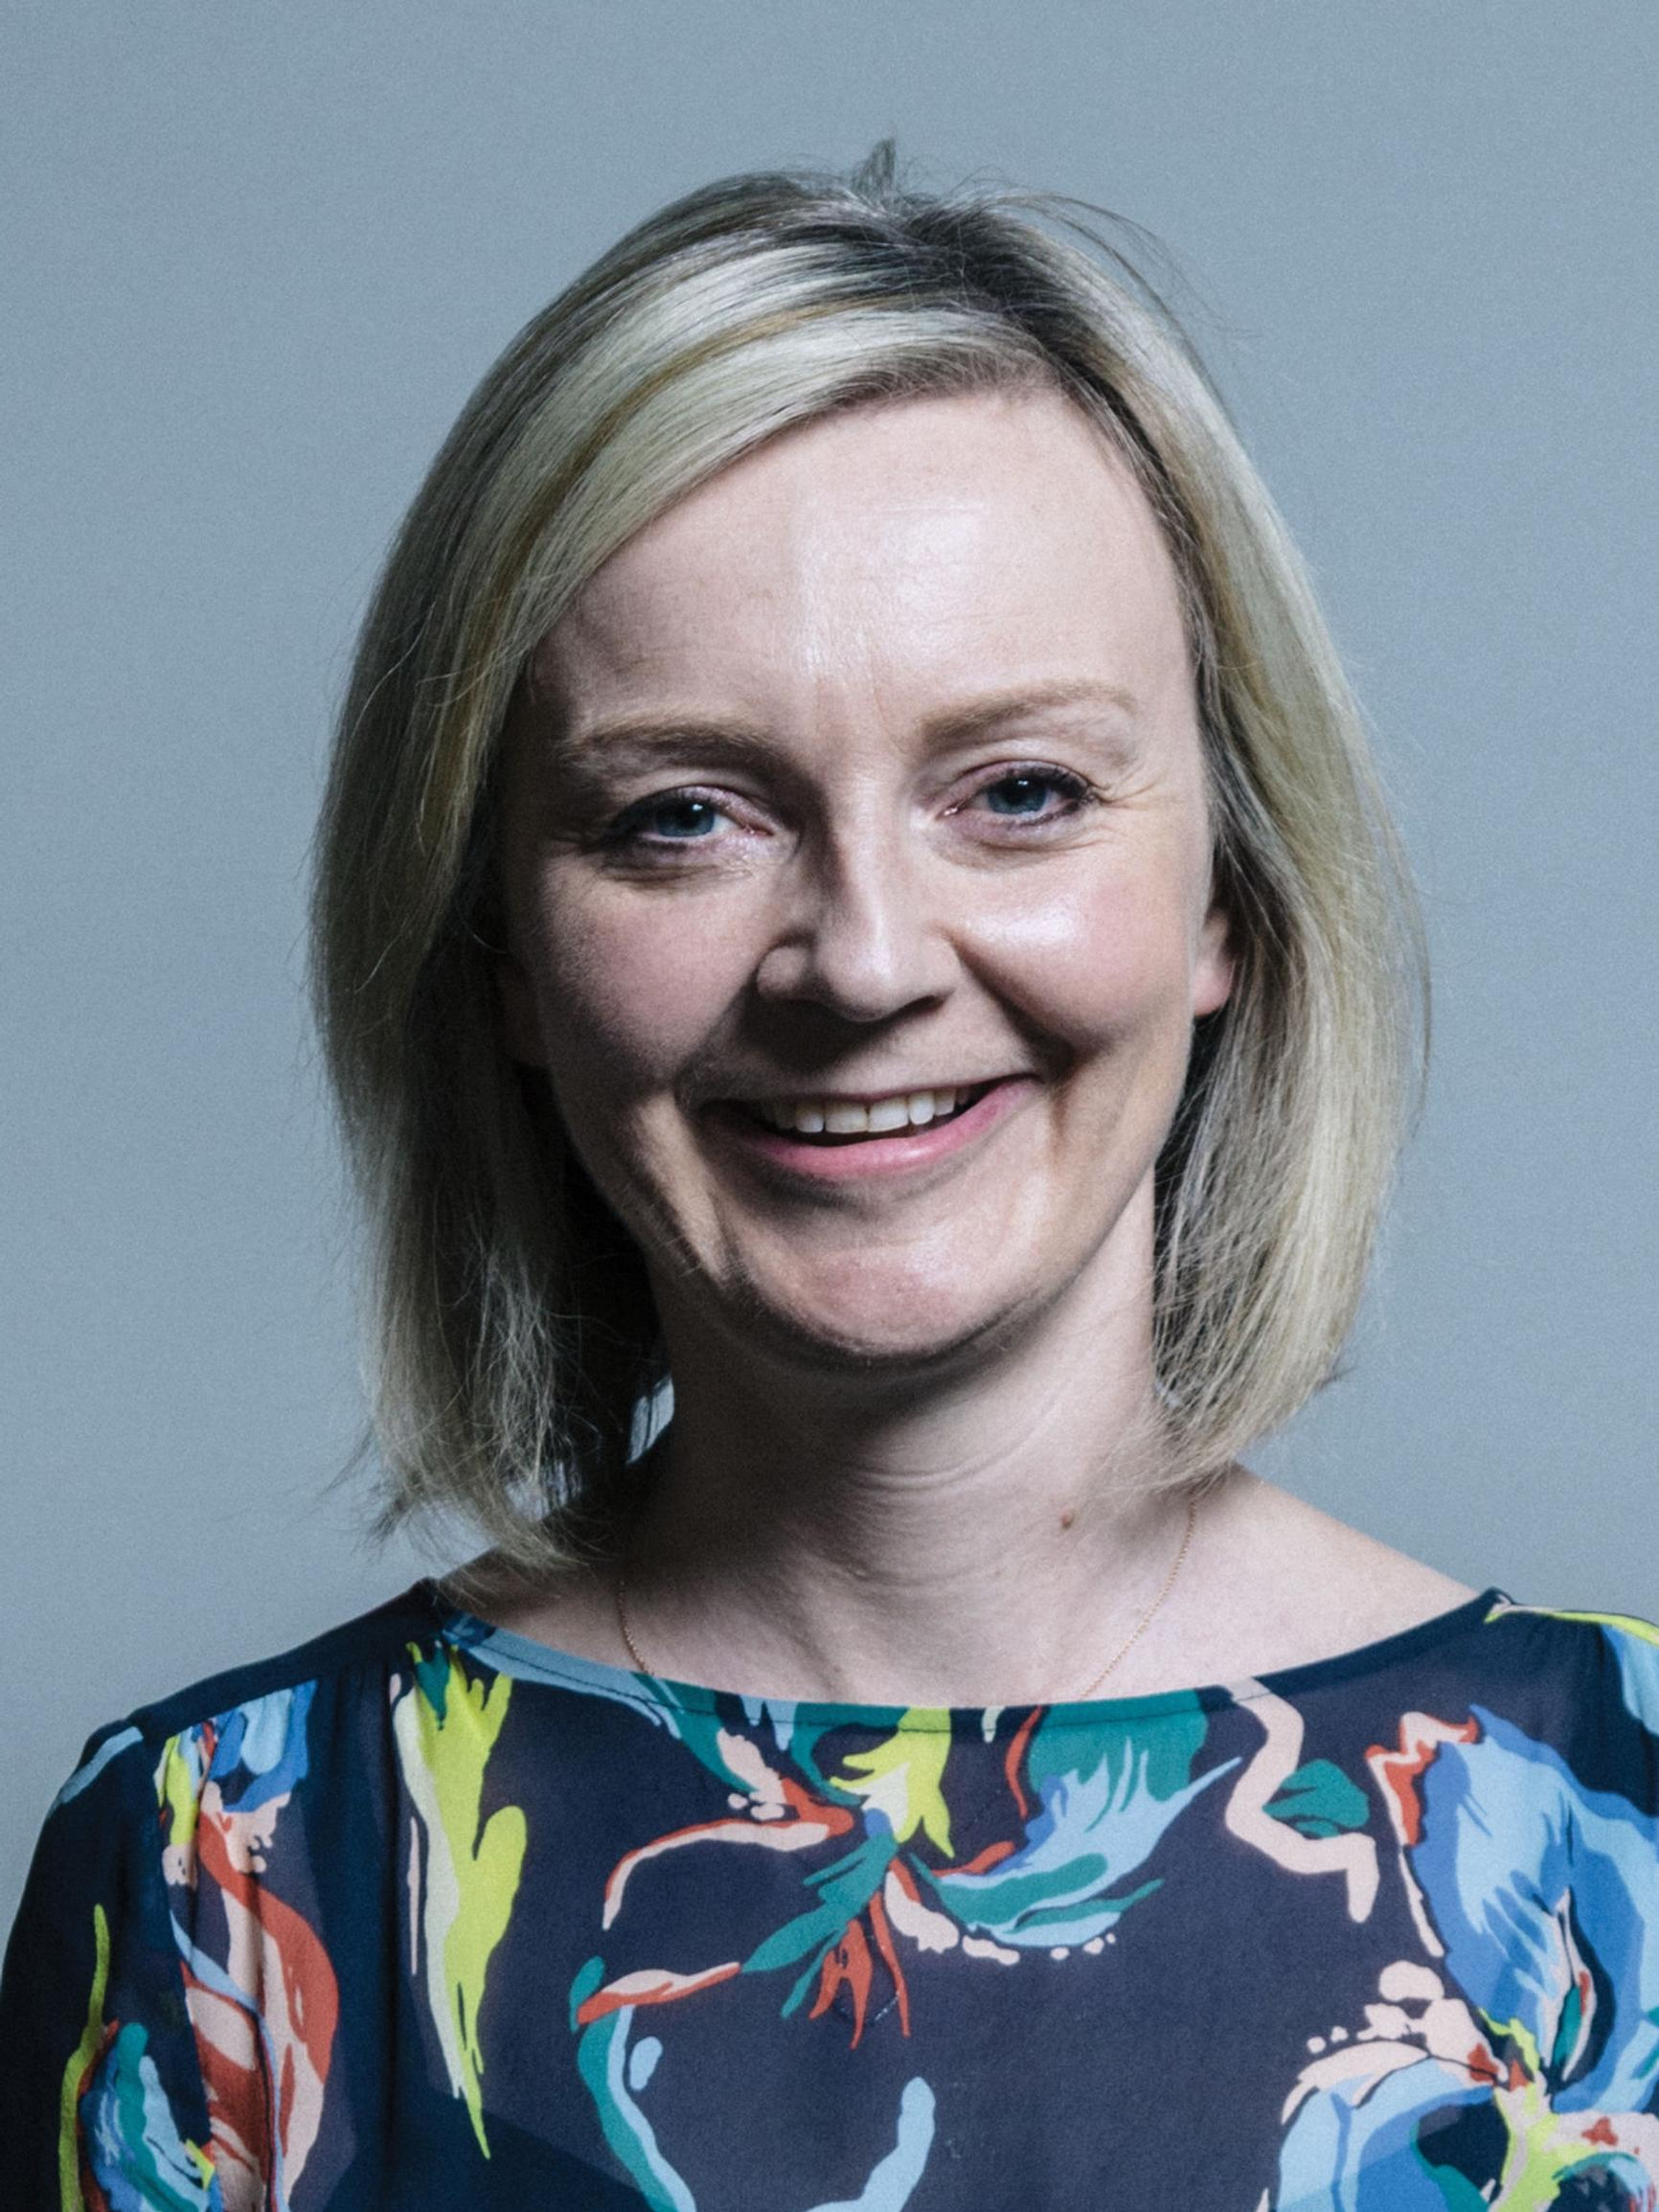 Treasury minister Liz Truss' brief comments on HS2 in a Spectator article garnered praise from a number of right-wing commentators